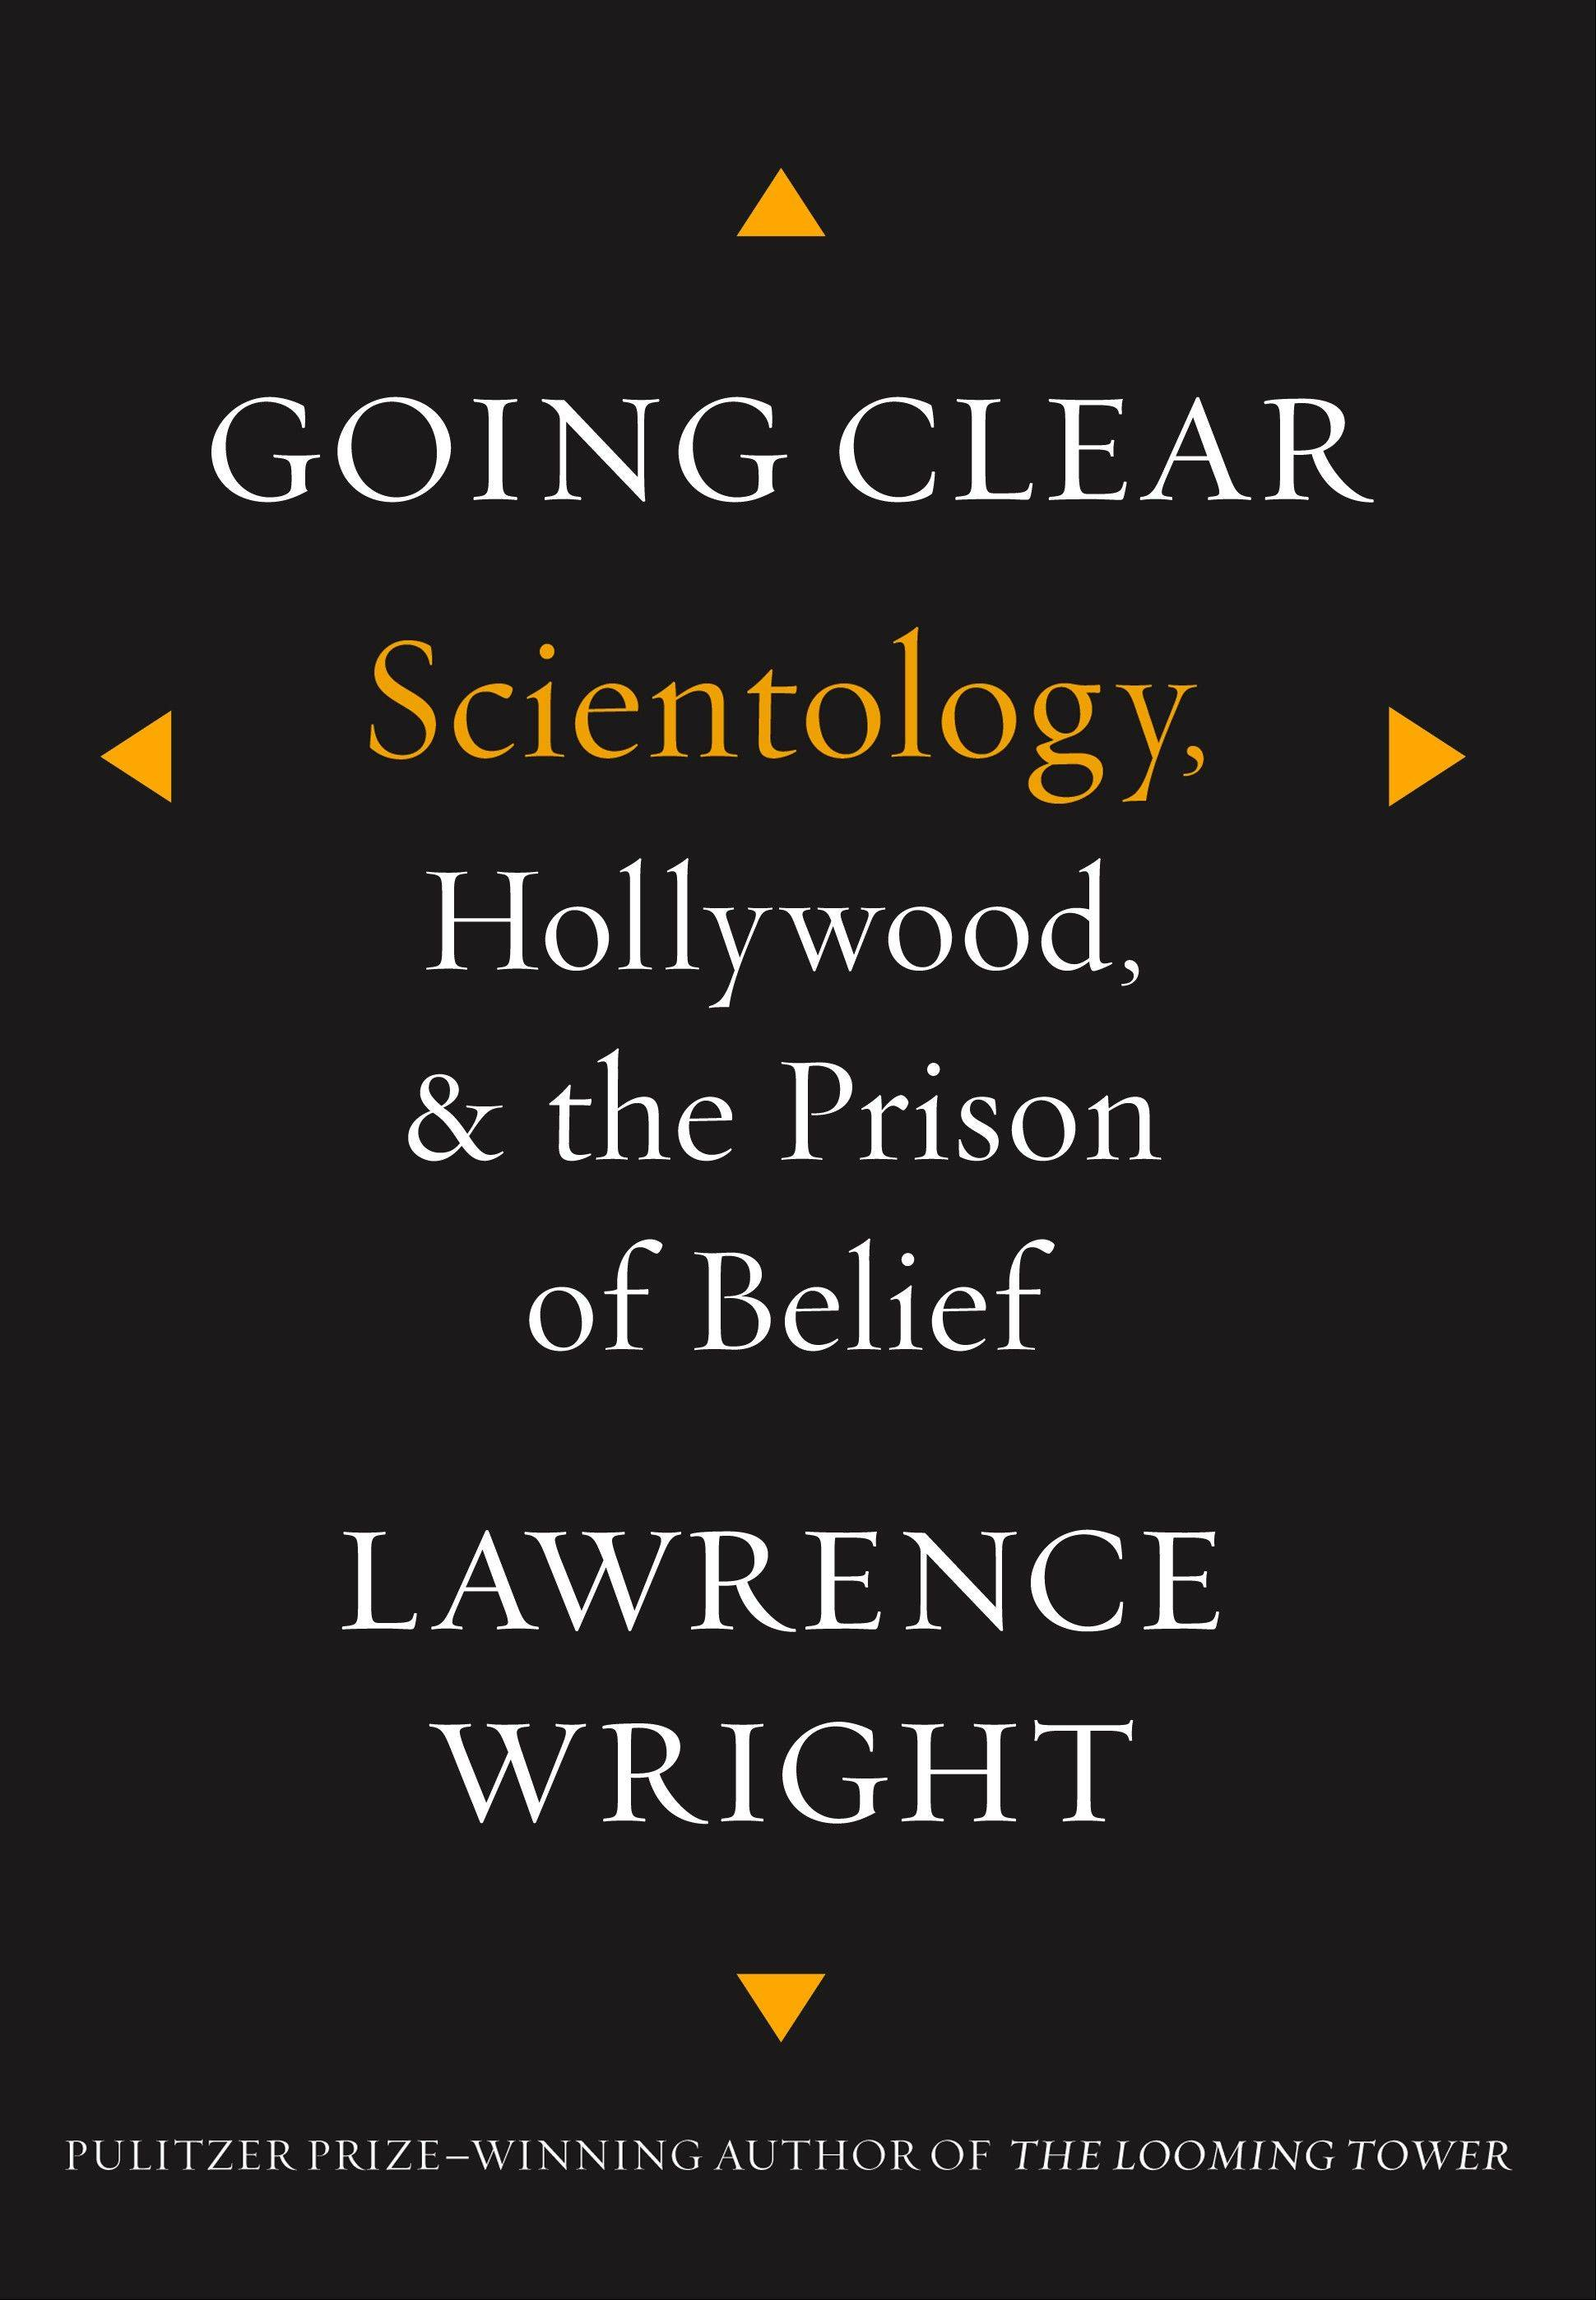 """Going Clear: Scientology, Hollywood & the Prison of Belief"" by Lawrence Wright"